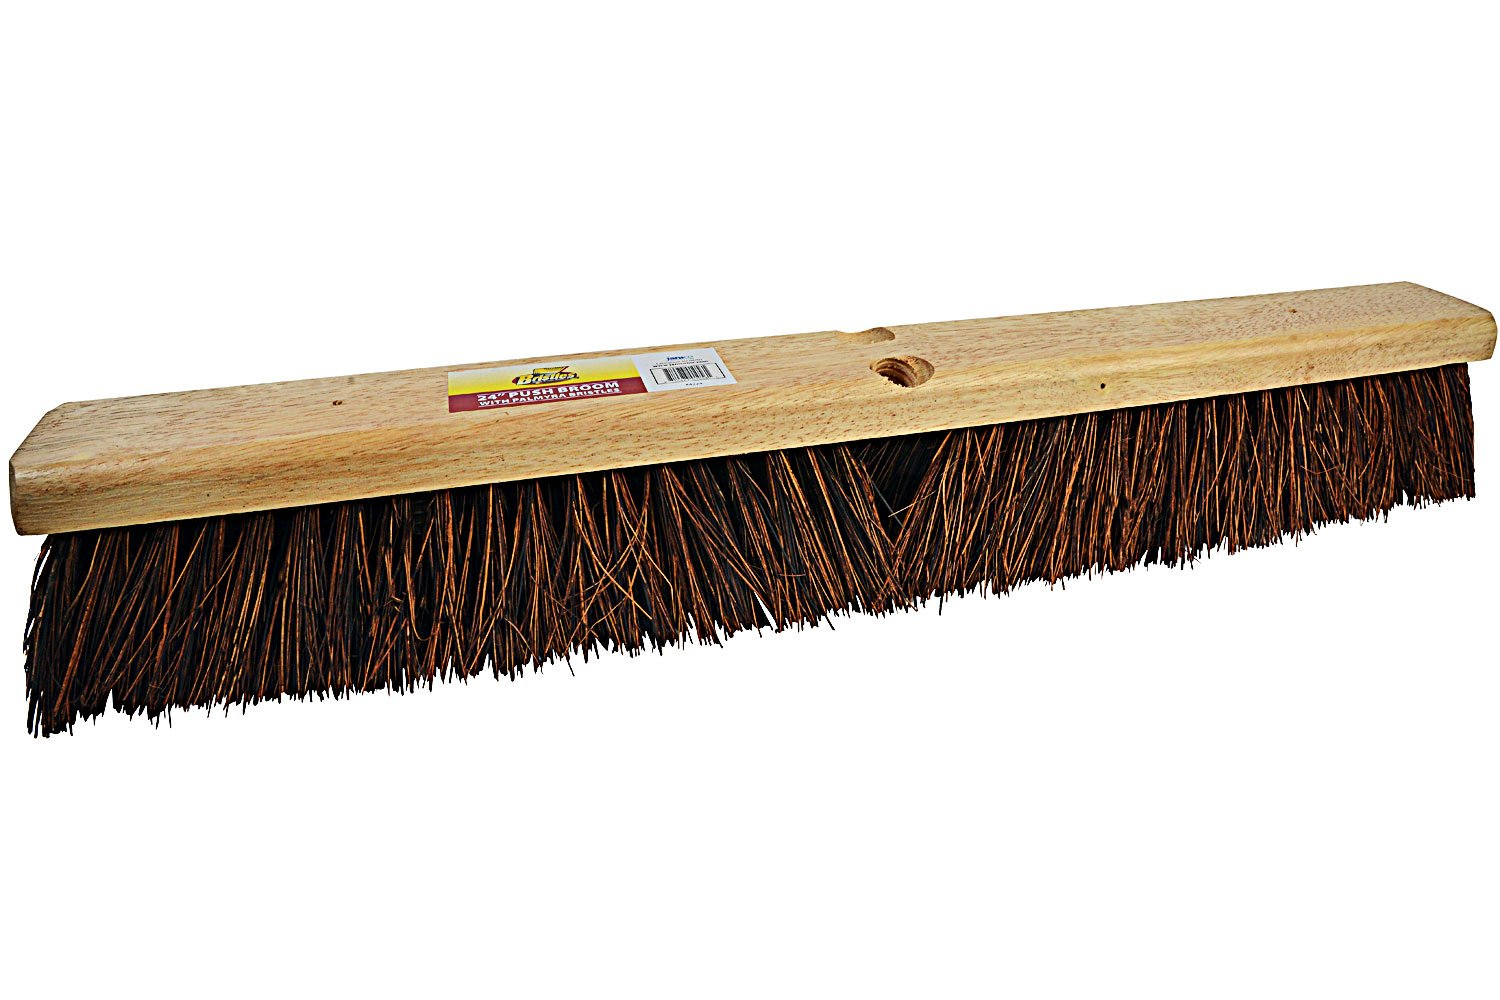 Bristles 4224 24'' Outdoor Push Broom Head – Heavy Duty Hardwood Block, Rough Surface Stiff Palmyra Fibers, Brown